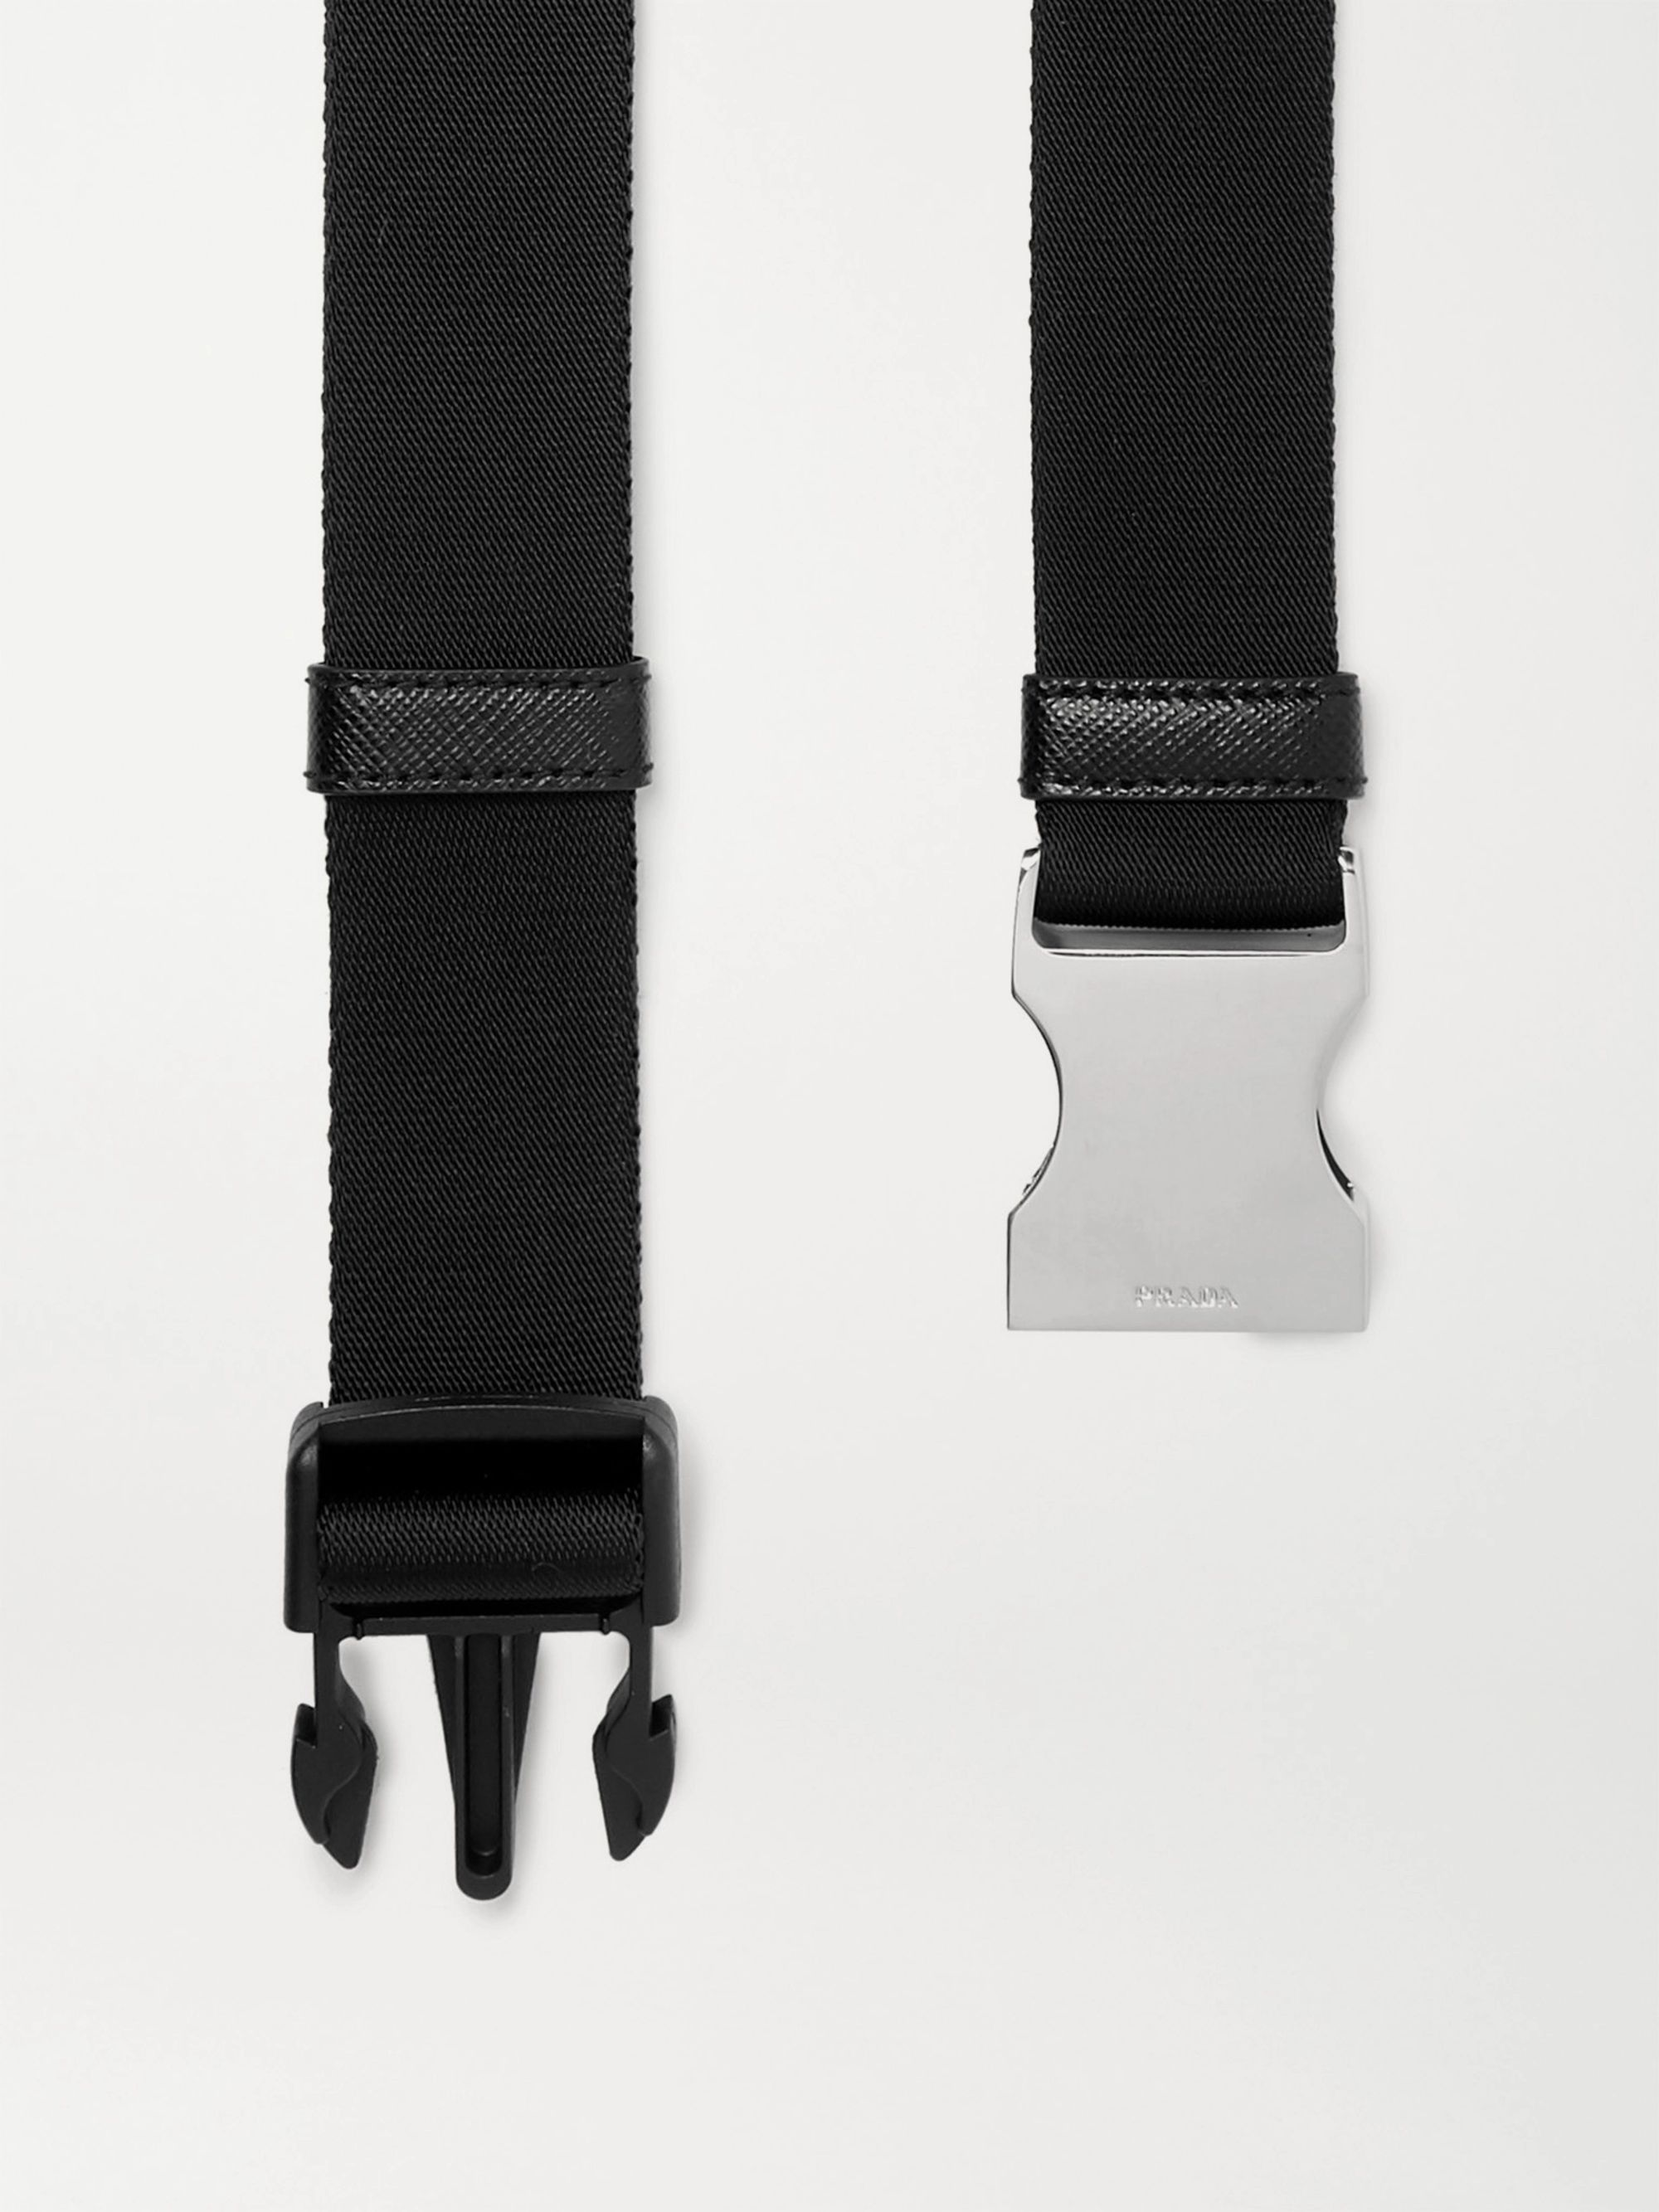 Prada 3cm Saffiano Leather-Trimmed Webbing Belt